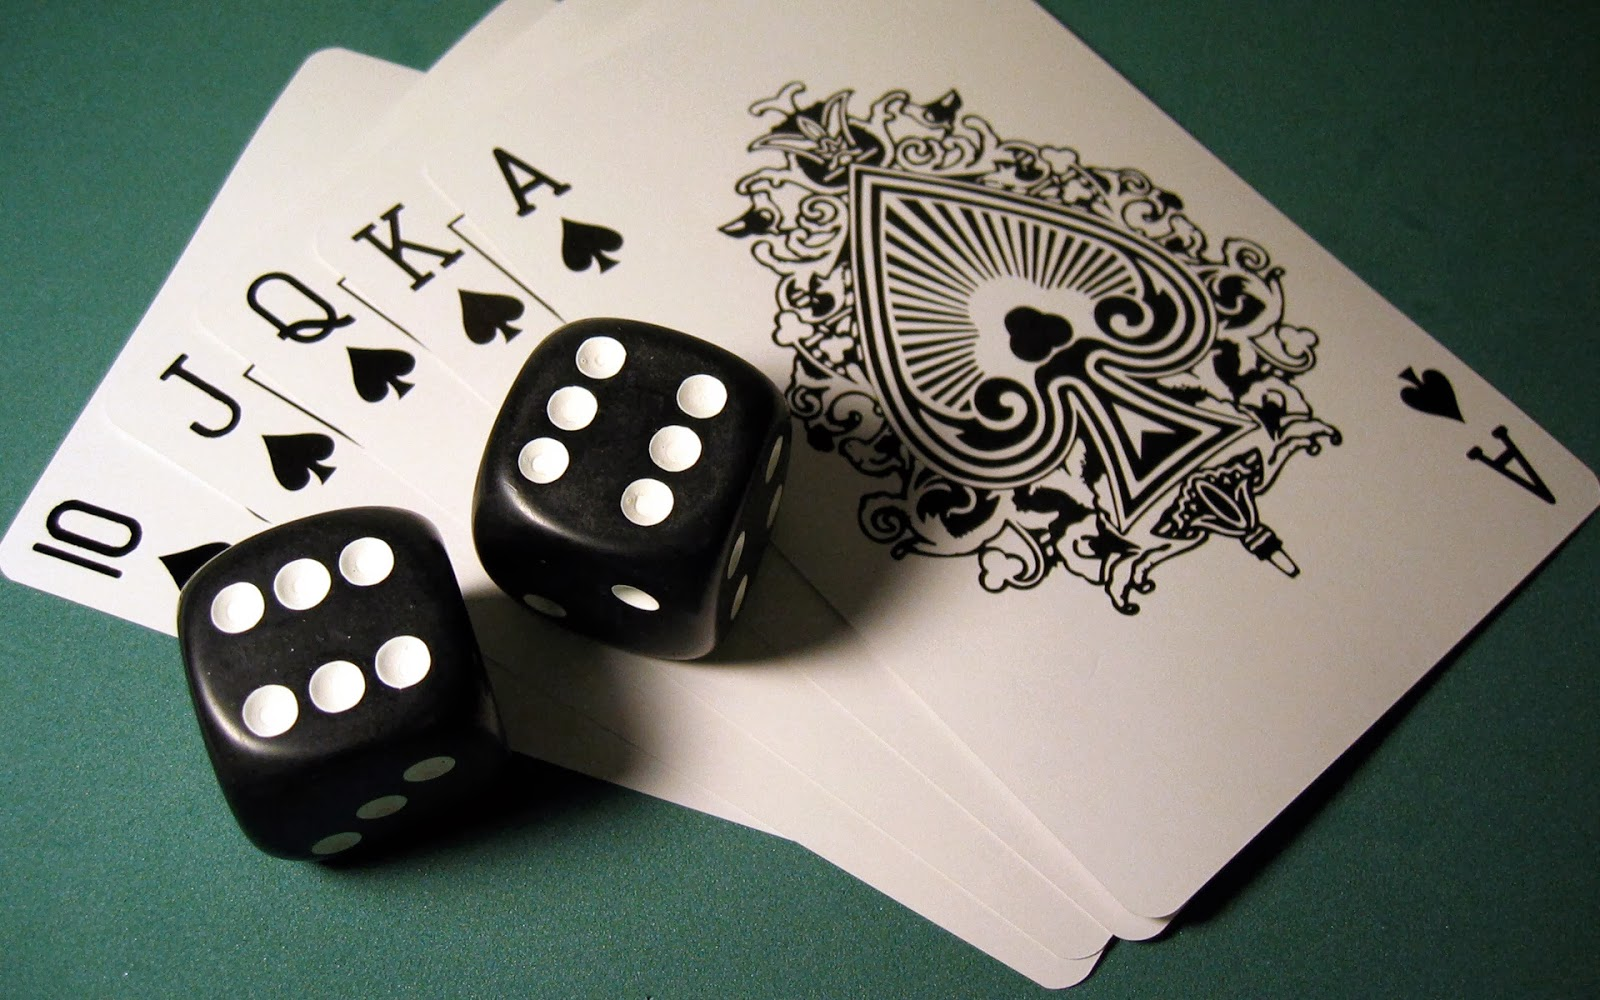 Why Gamble Without Tax Help When Filing Taxes?